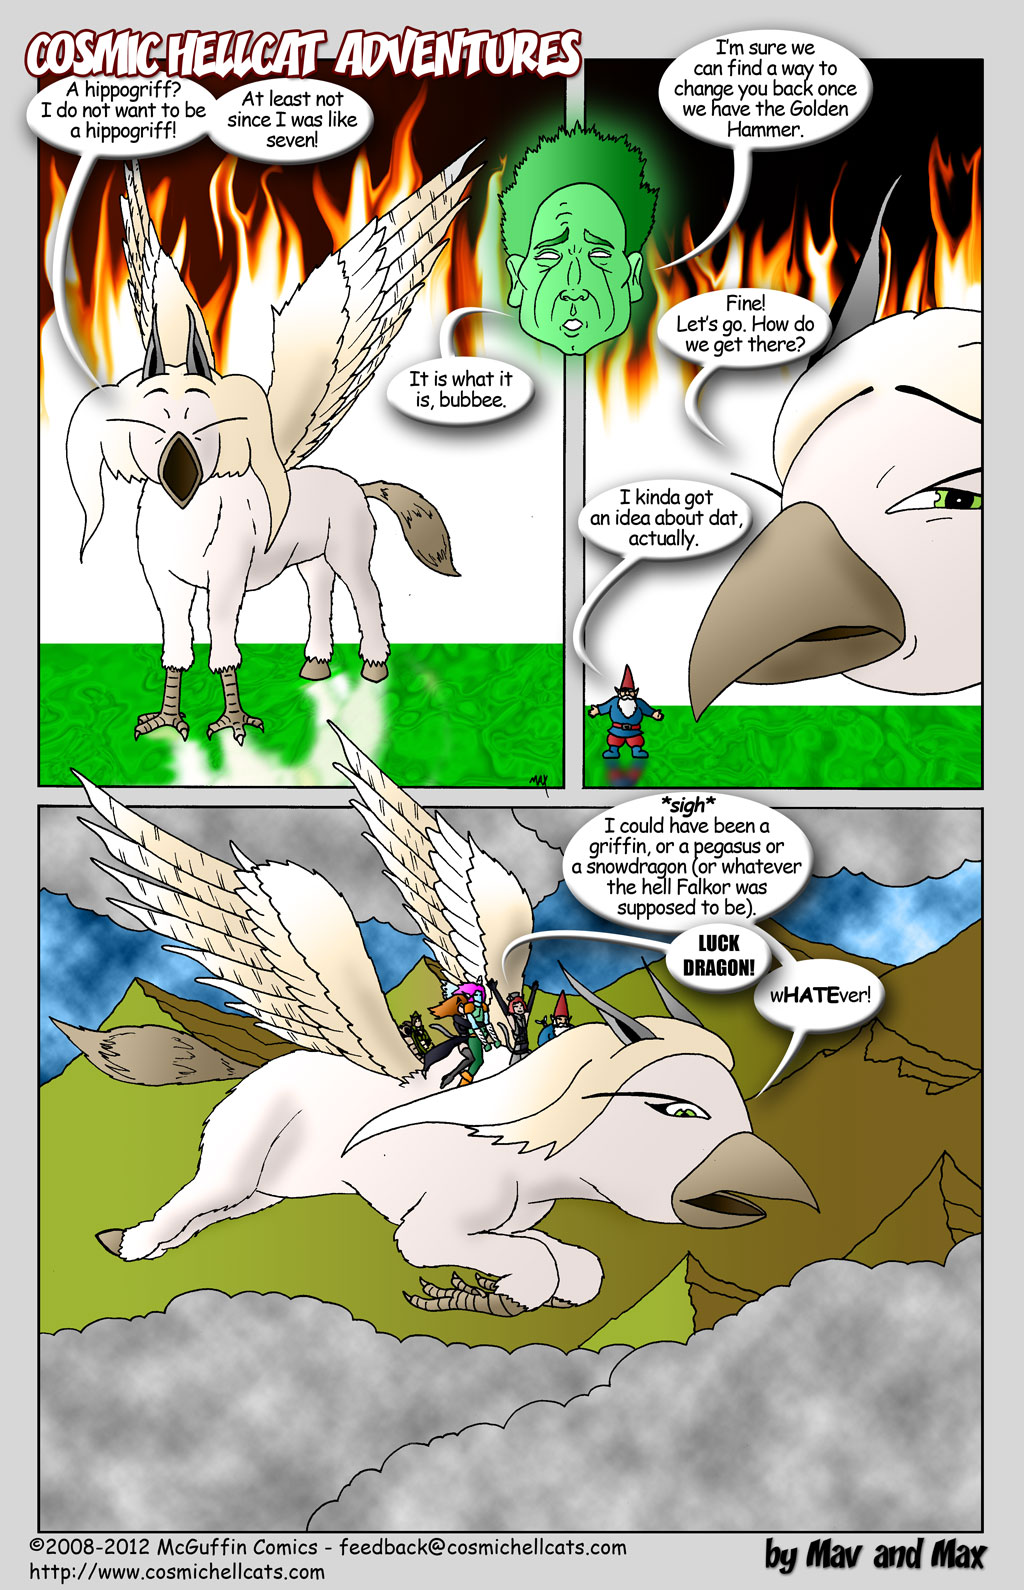 I do not want to be a hippogriff!